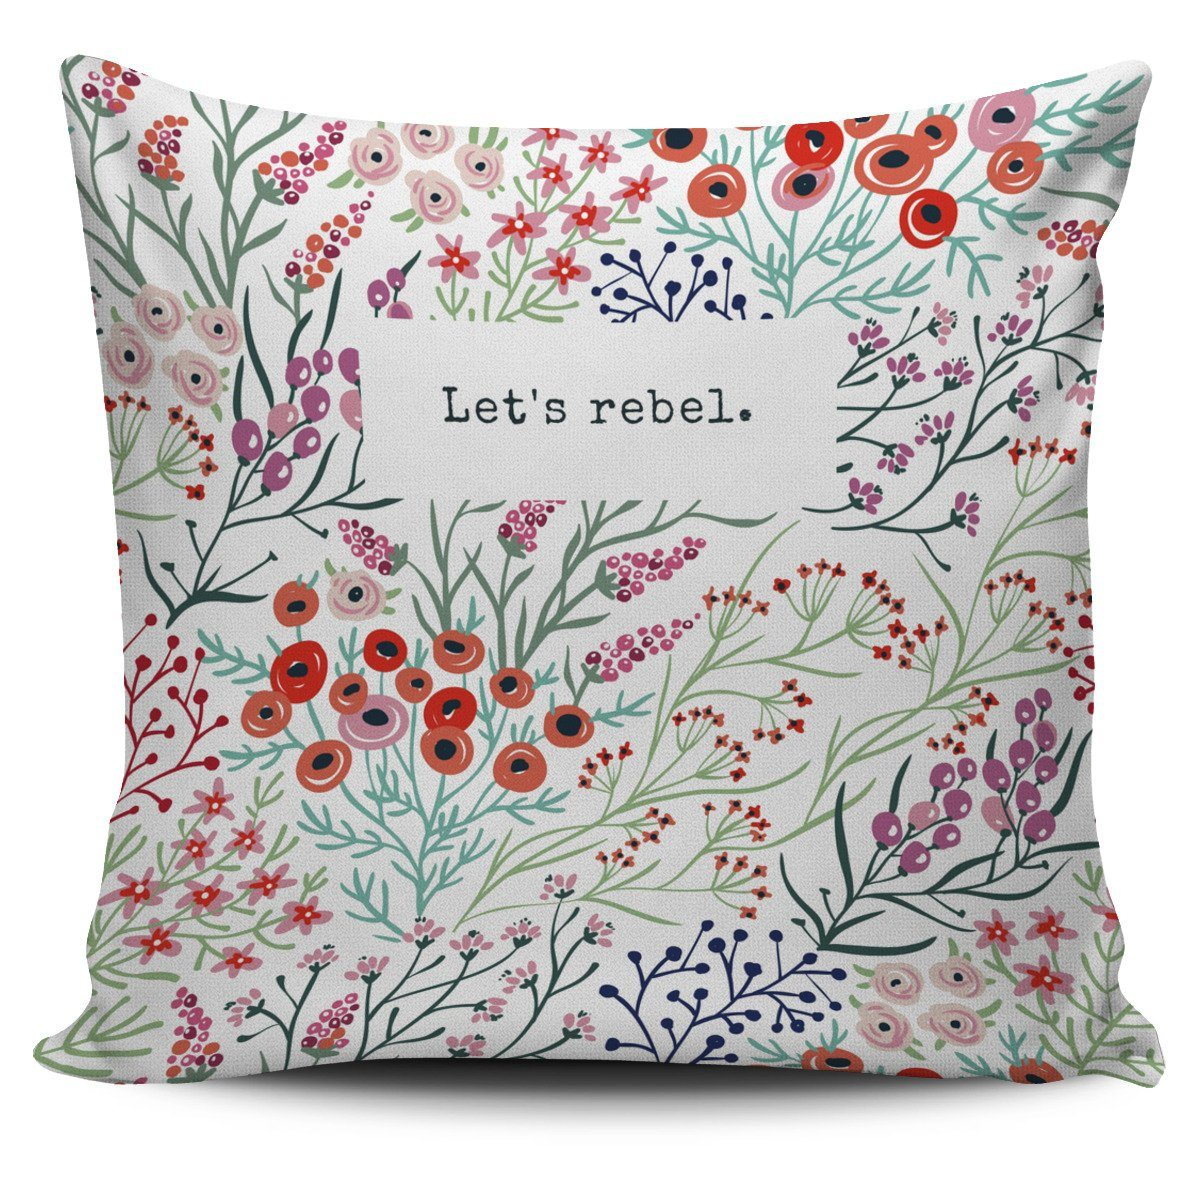 """Let's rebel."" Pillow Cover"